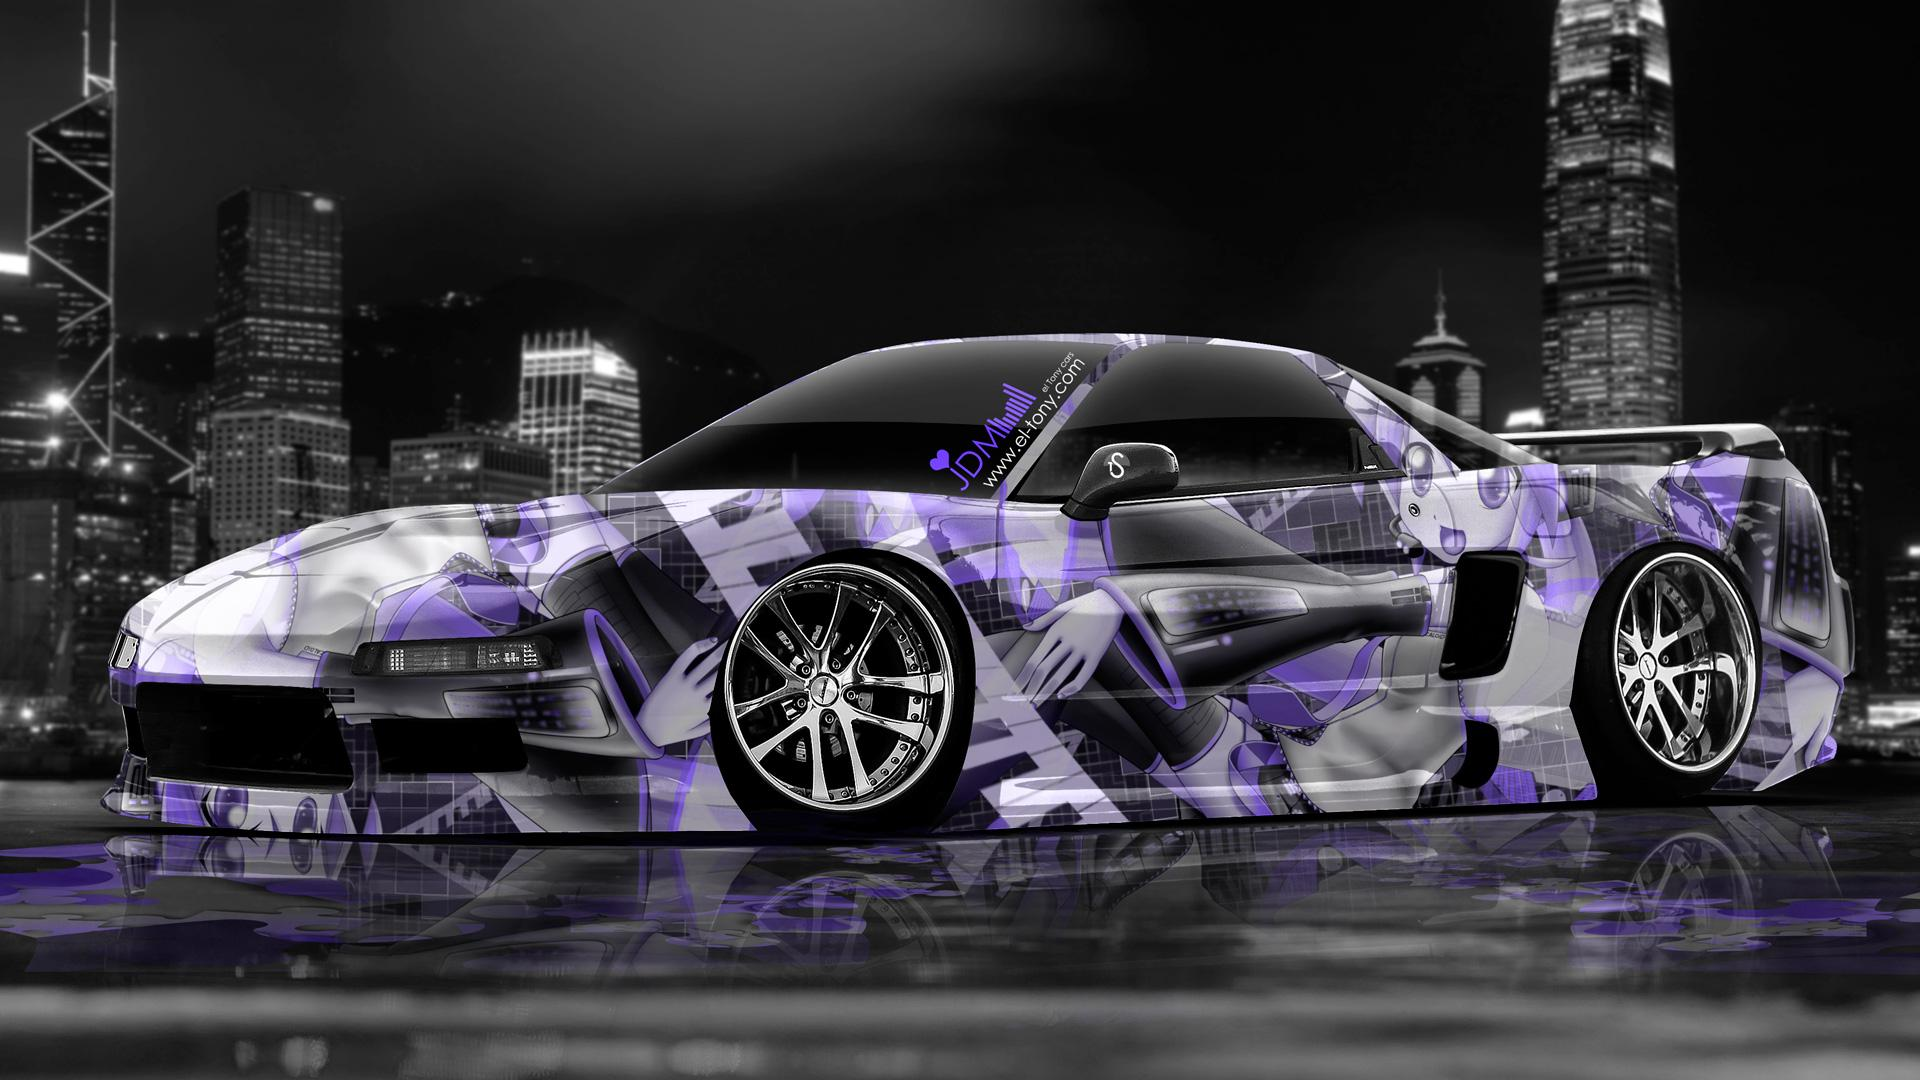 Toyota Supra Anime JDM City Car 2013 Back Blue Neon HD Wallpapers By